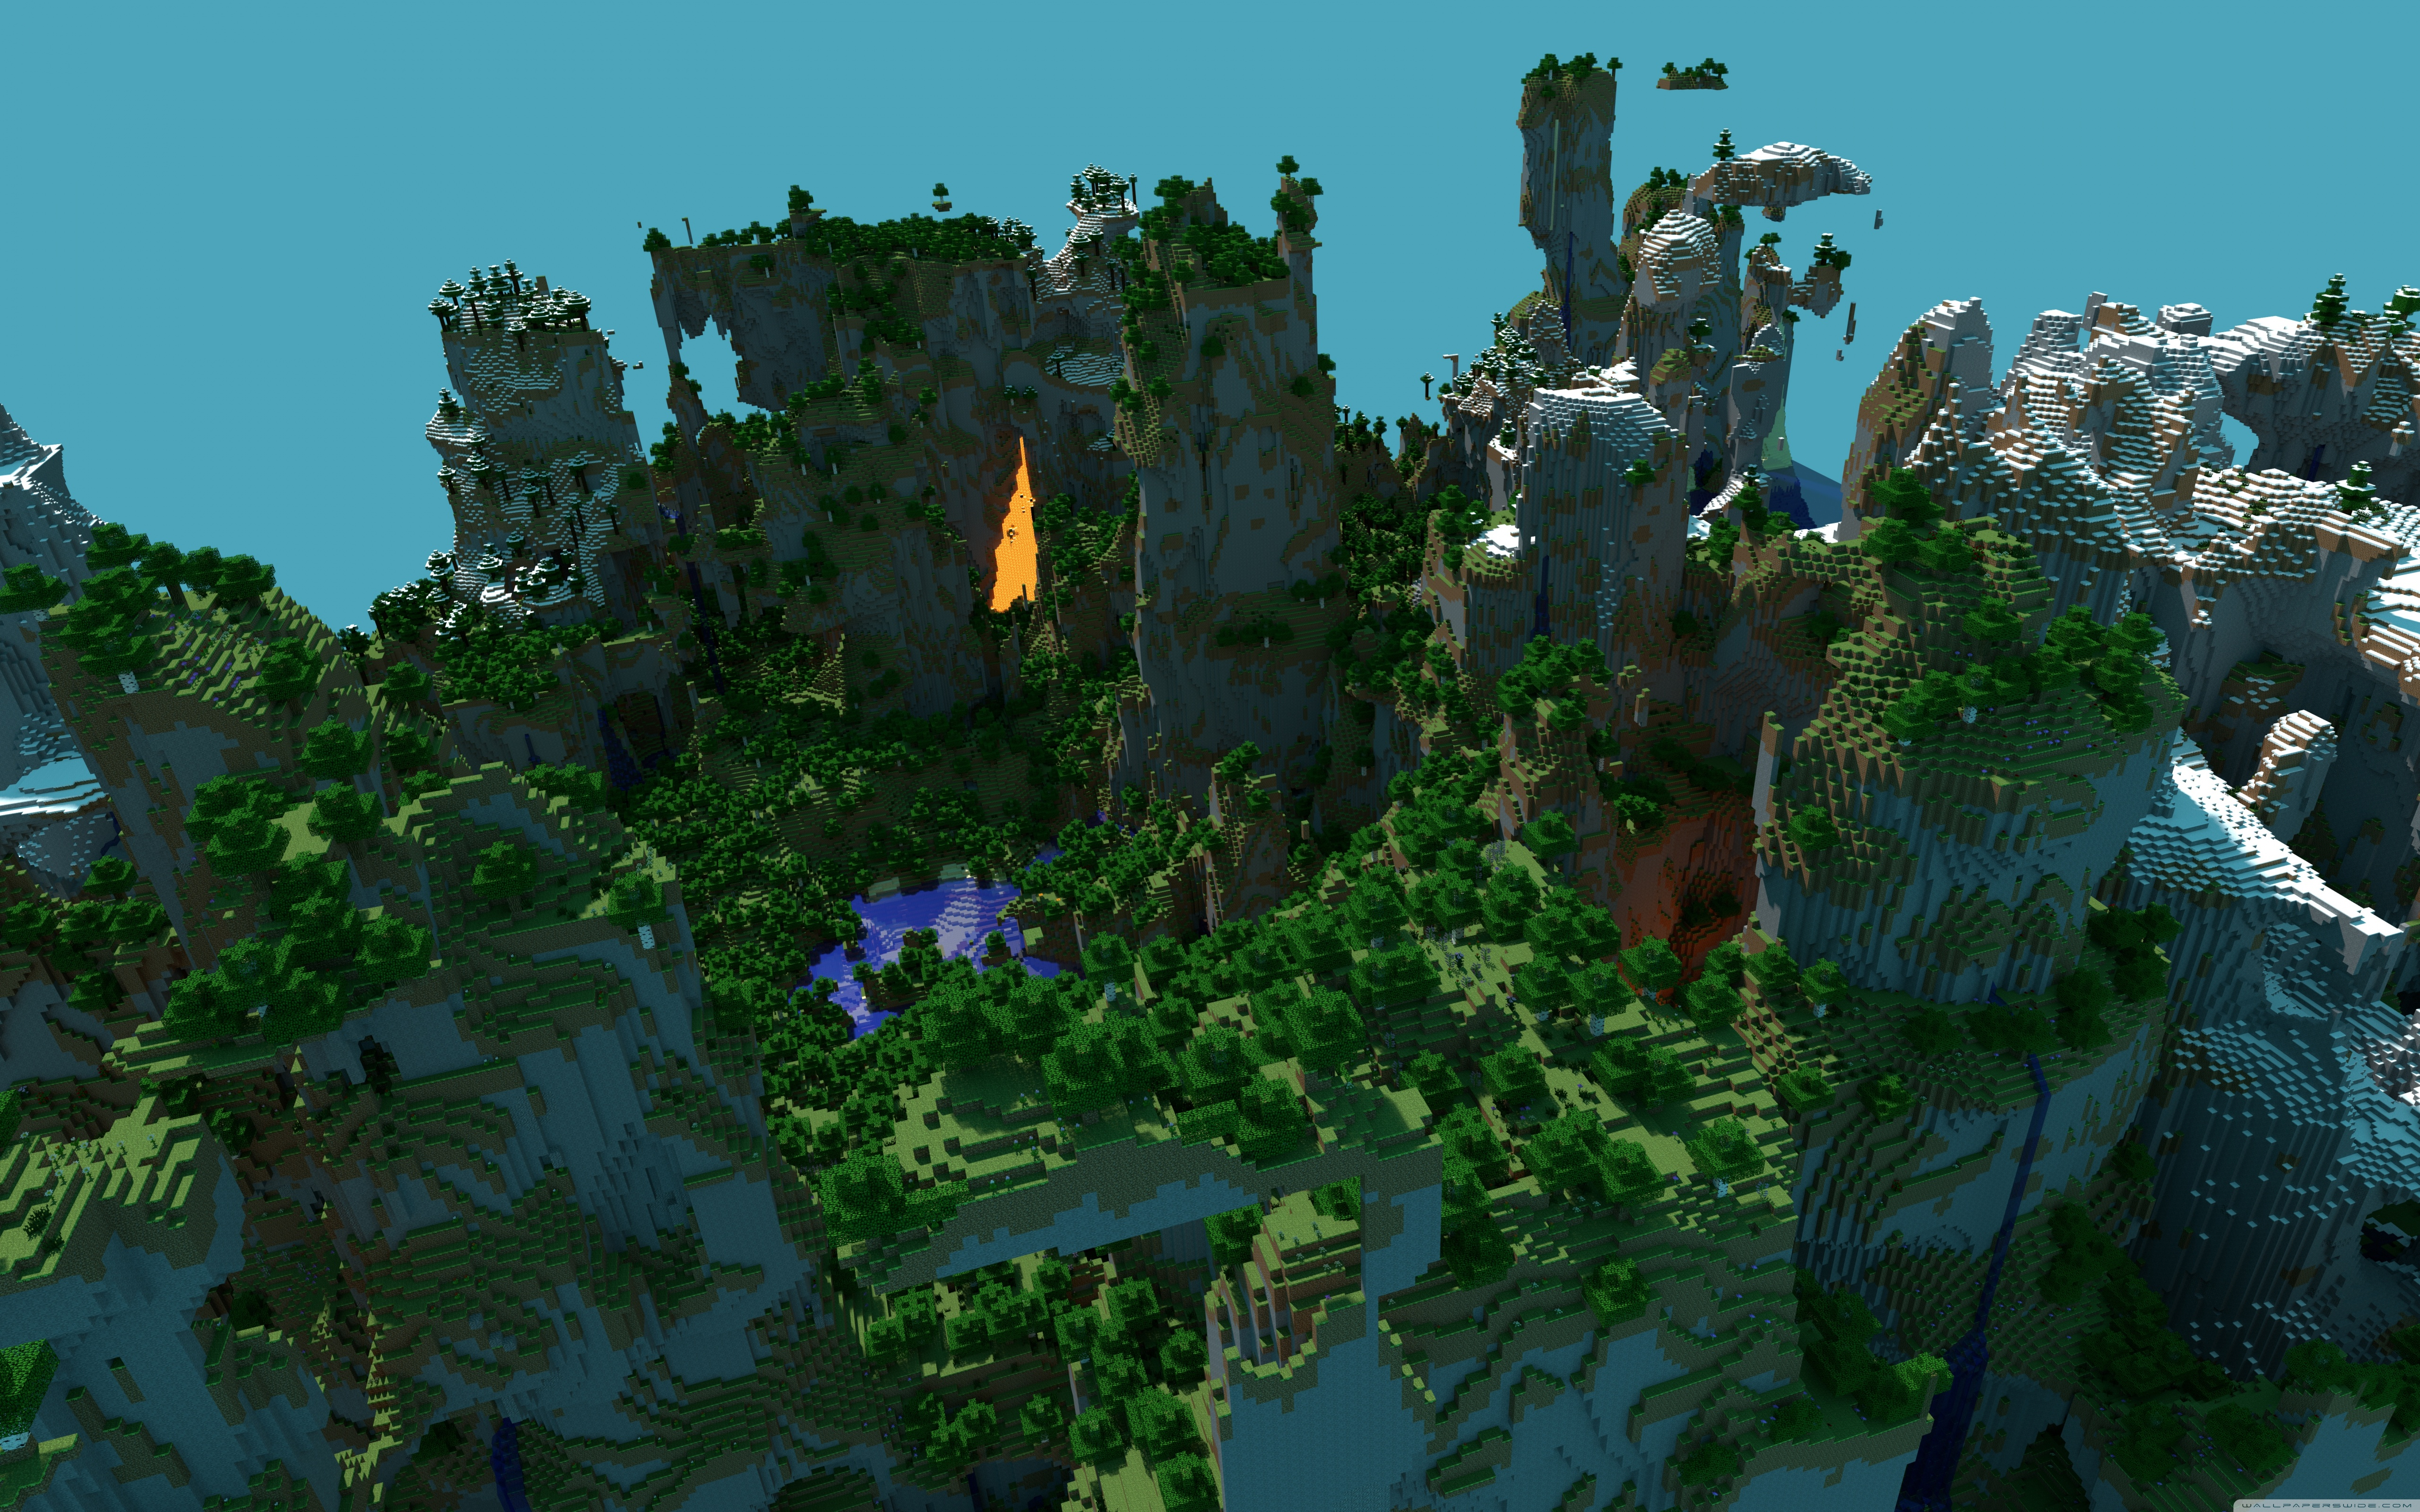 Wide Minecraft Wallpaper 4k 61675 Hd Wallpaper Backgrounds Download